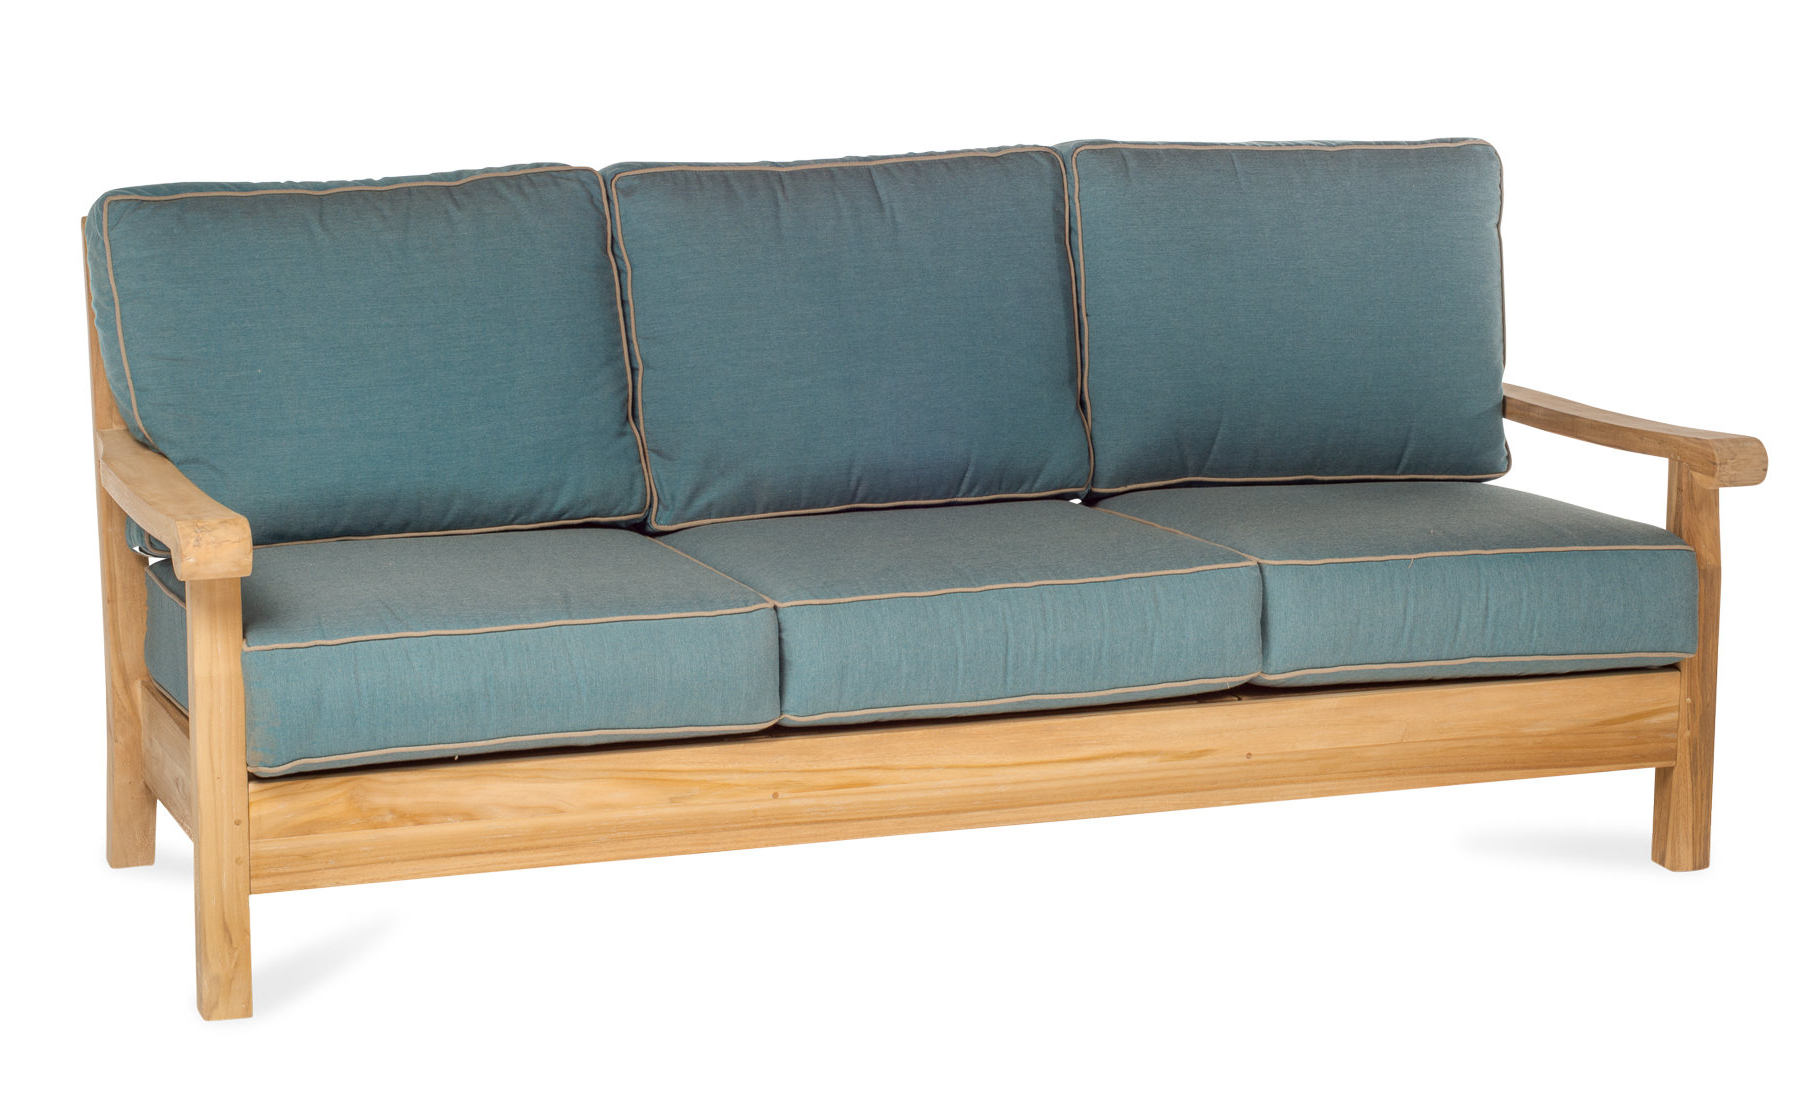 Trendy Chasity Teak Patio Sofa With Sunbrella Cushion With Mansfield Teak Loveseats With Cushion (View 19 of 20)